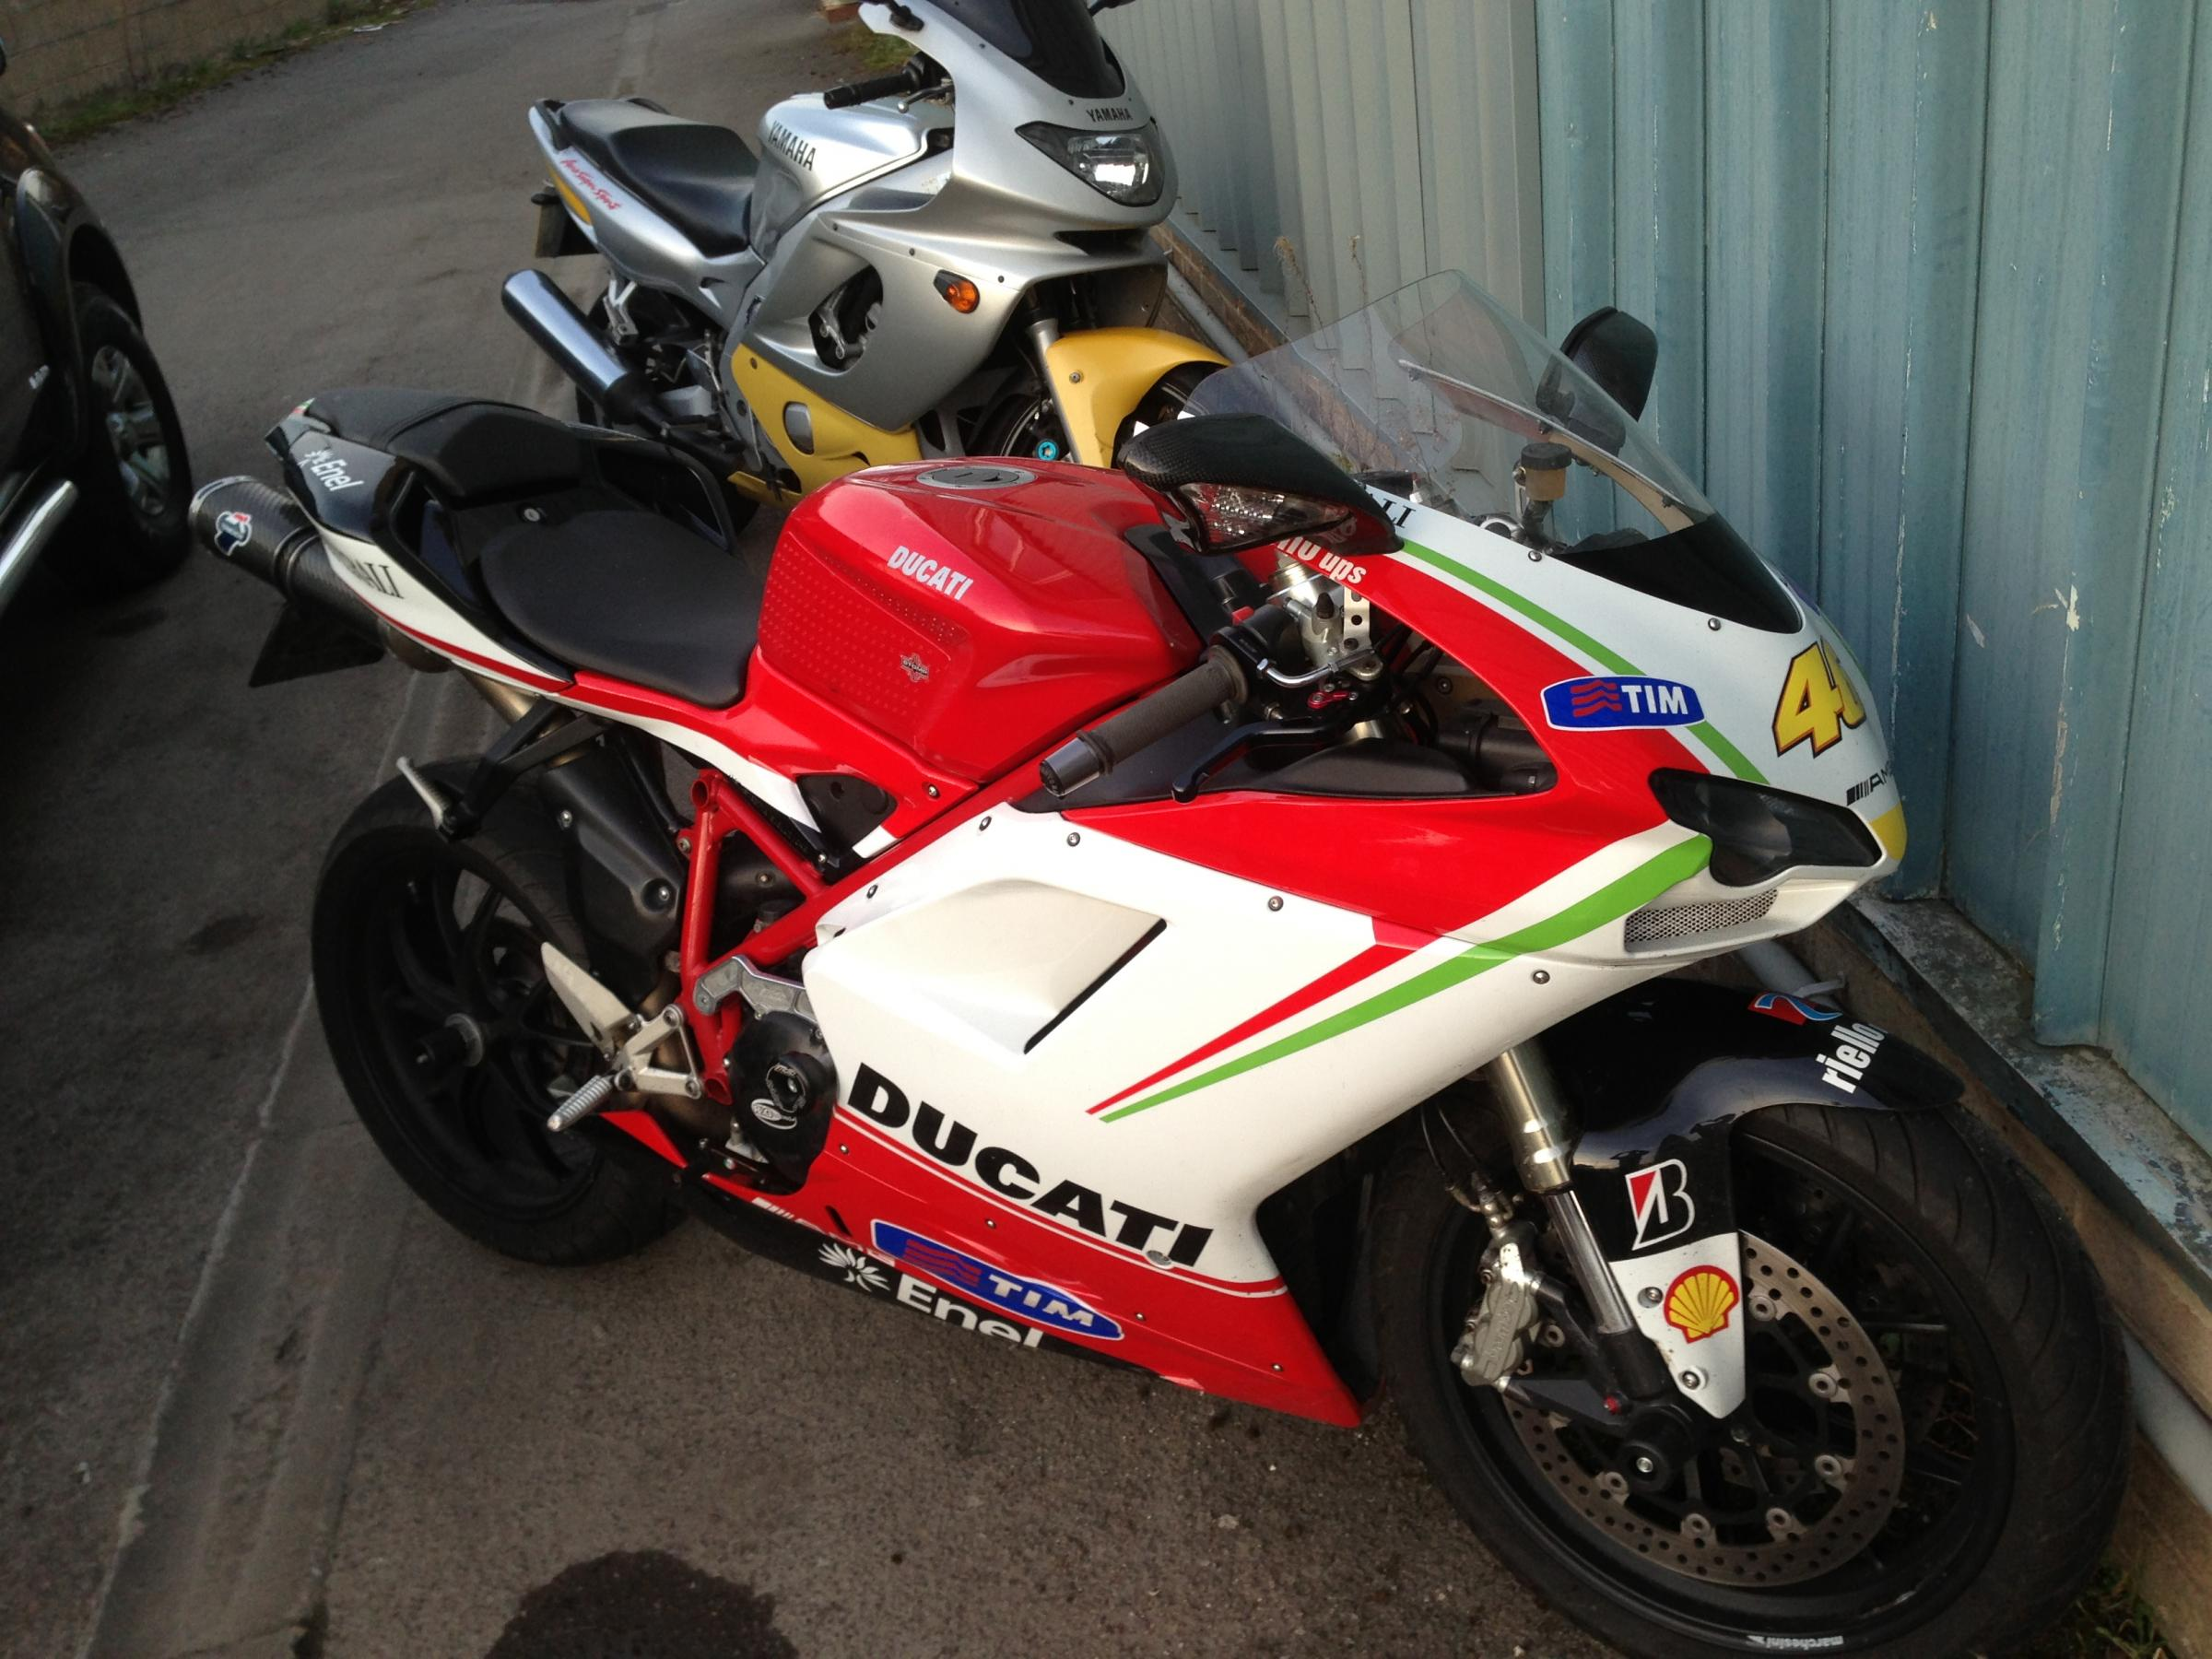 Pictures of 'distinctive' stolen motorbike released